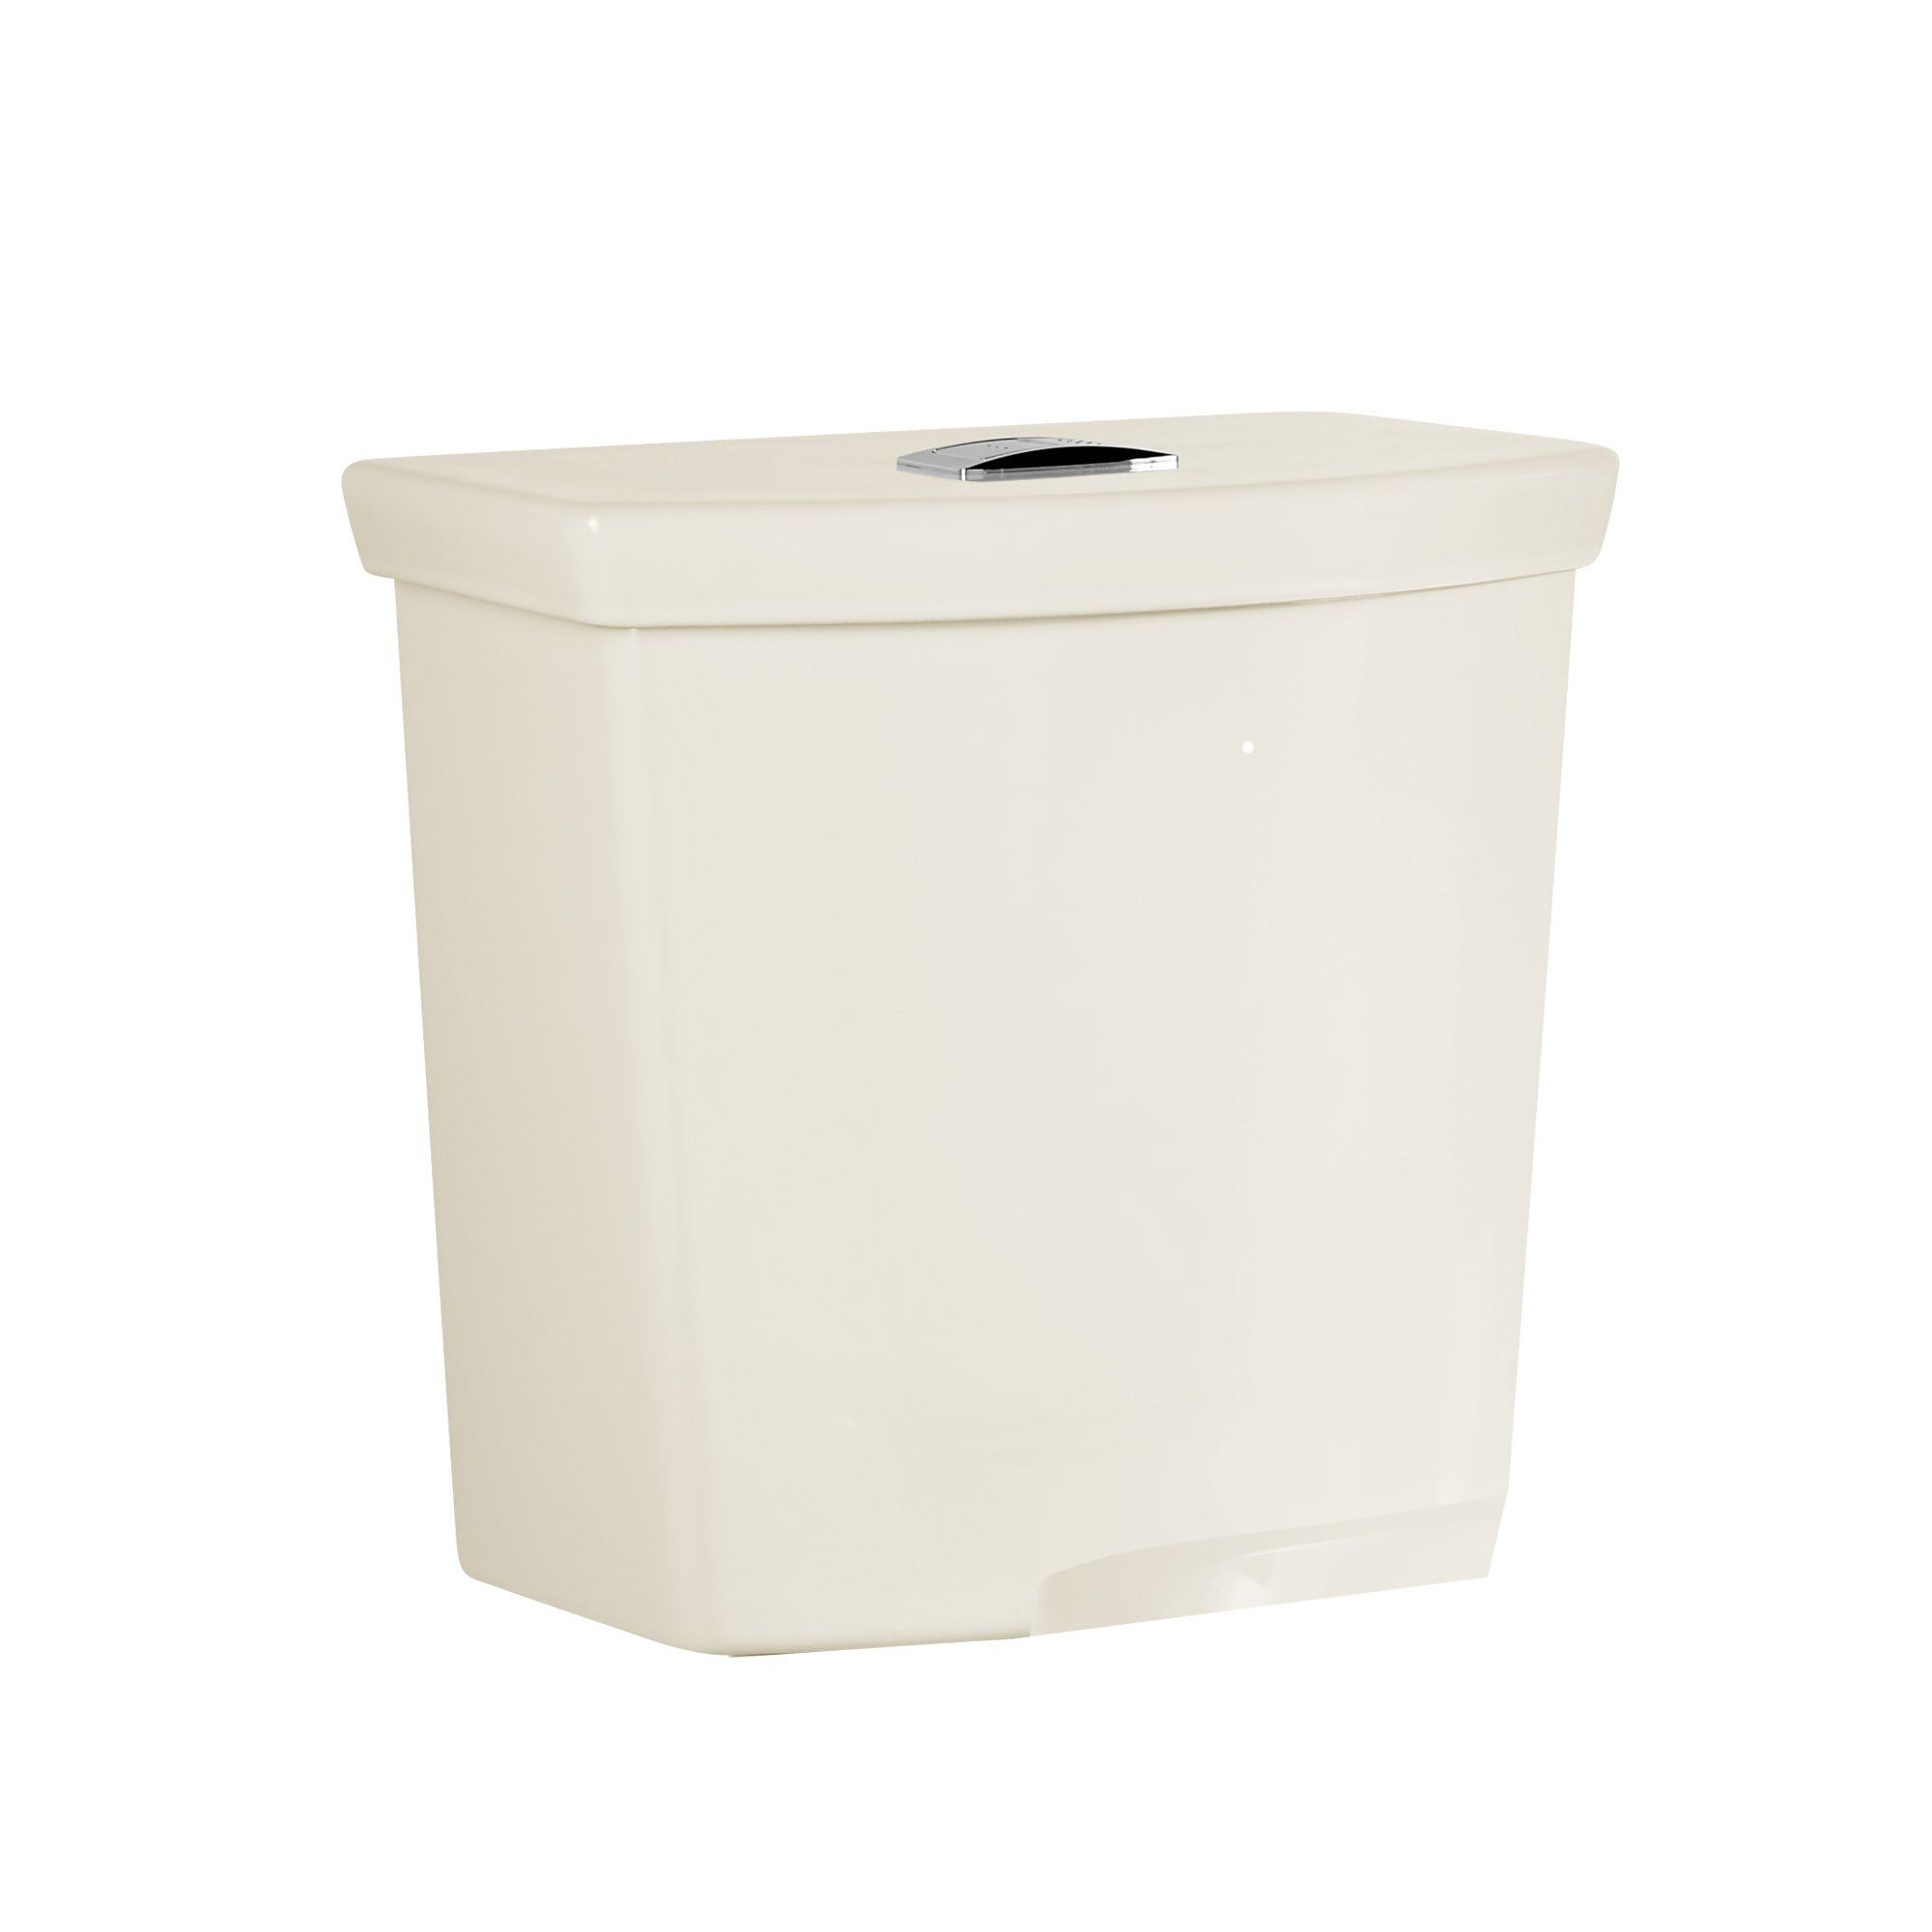 American Standard 4133A218.222 H2Option Dual Flush 12'' Rough-In Toilet Tank, Linen